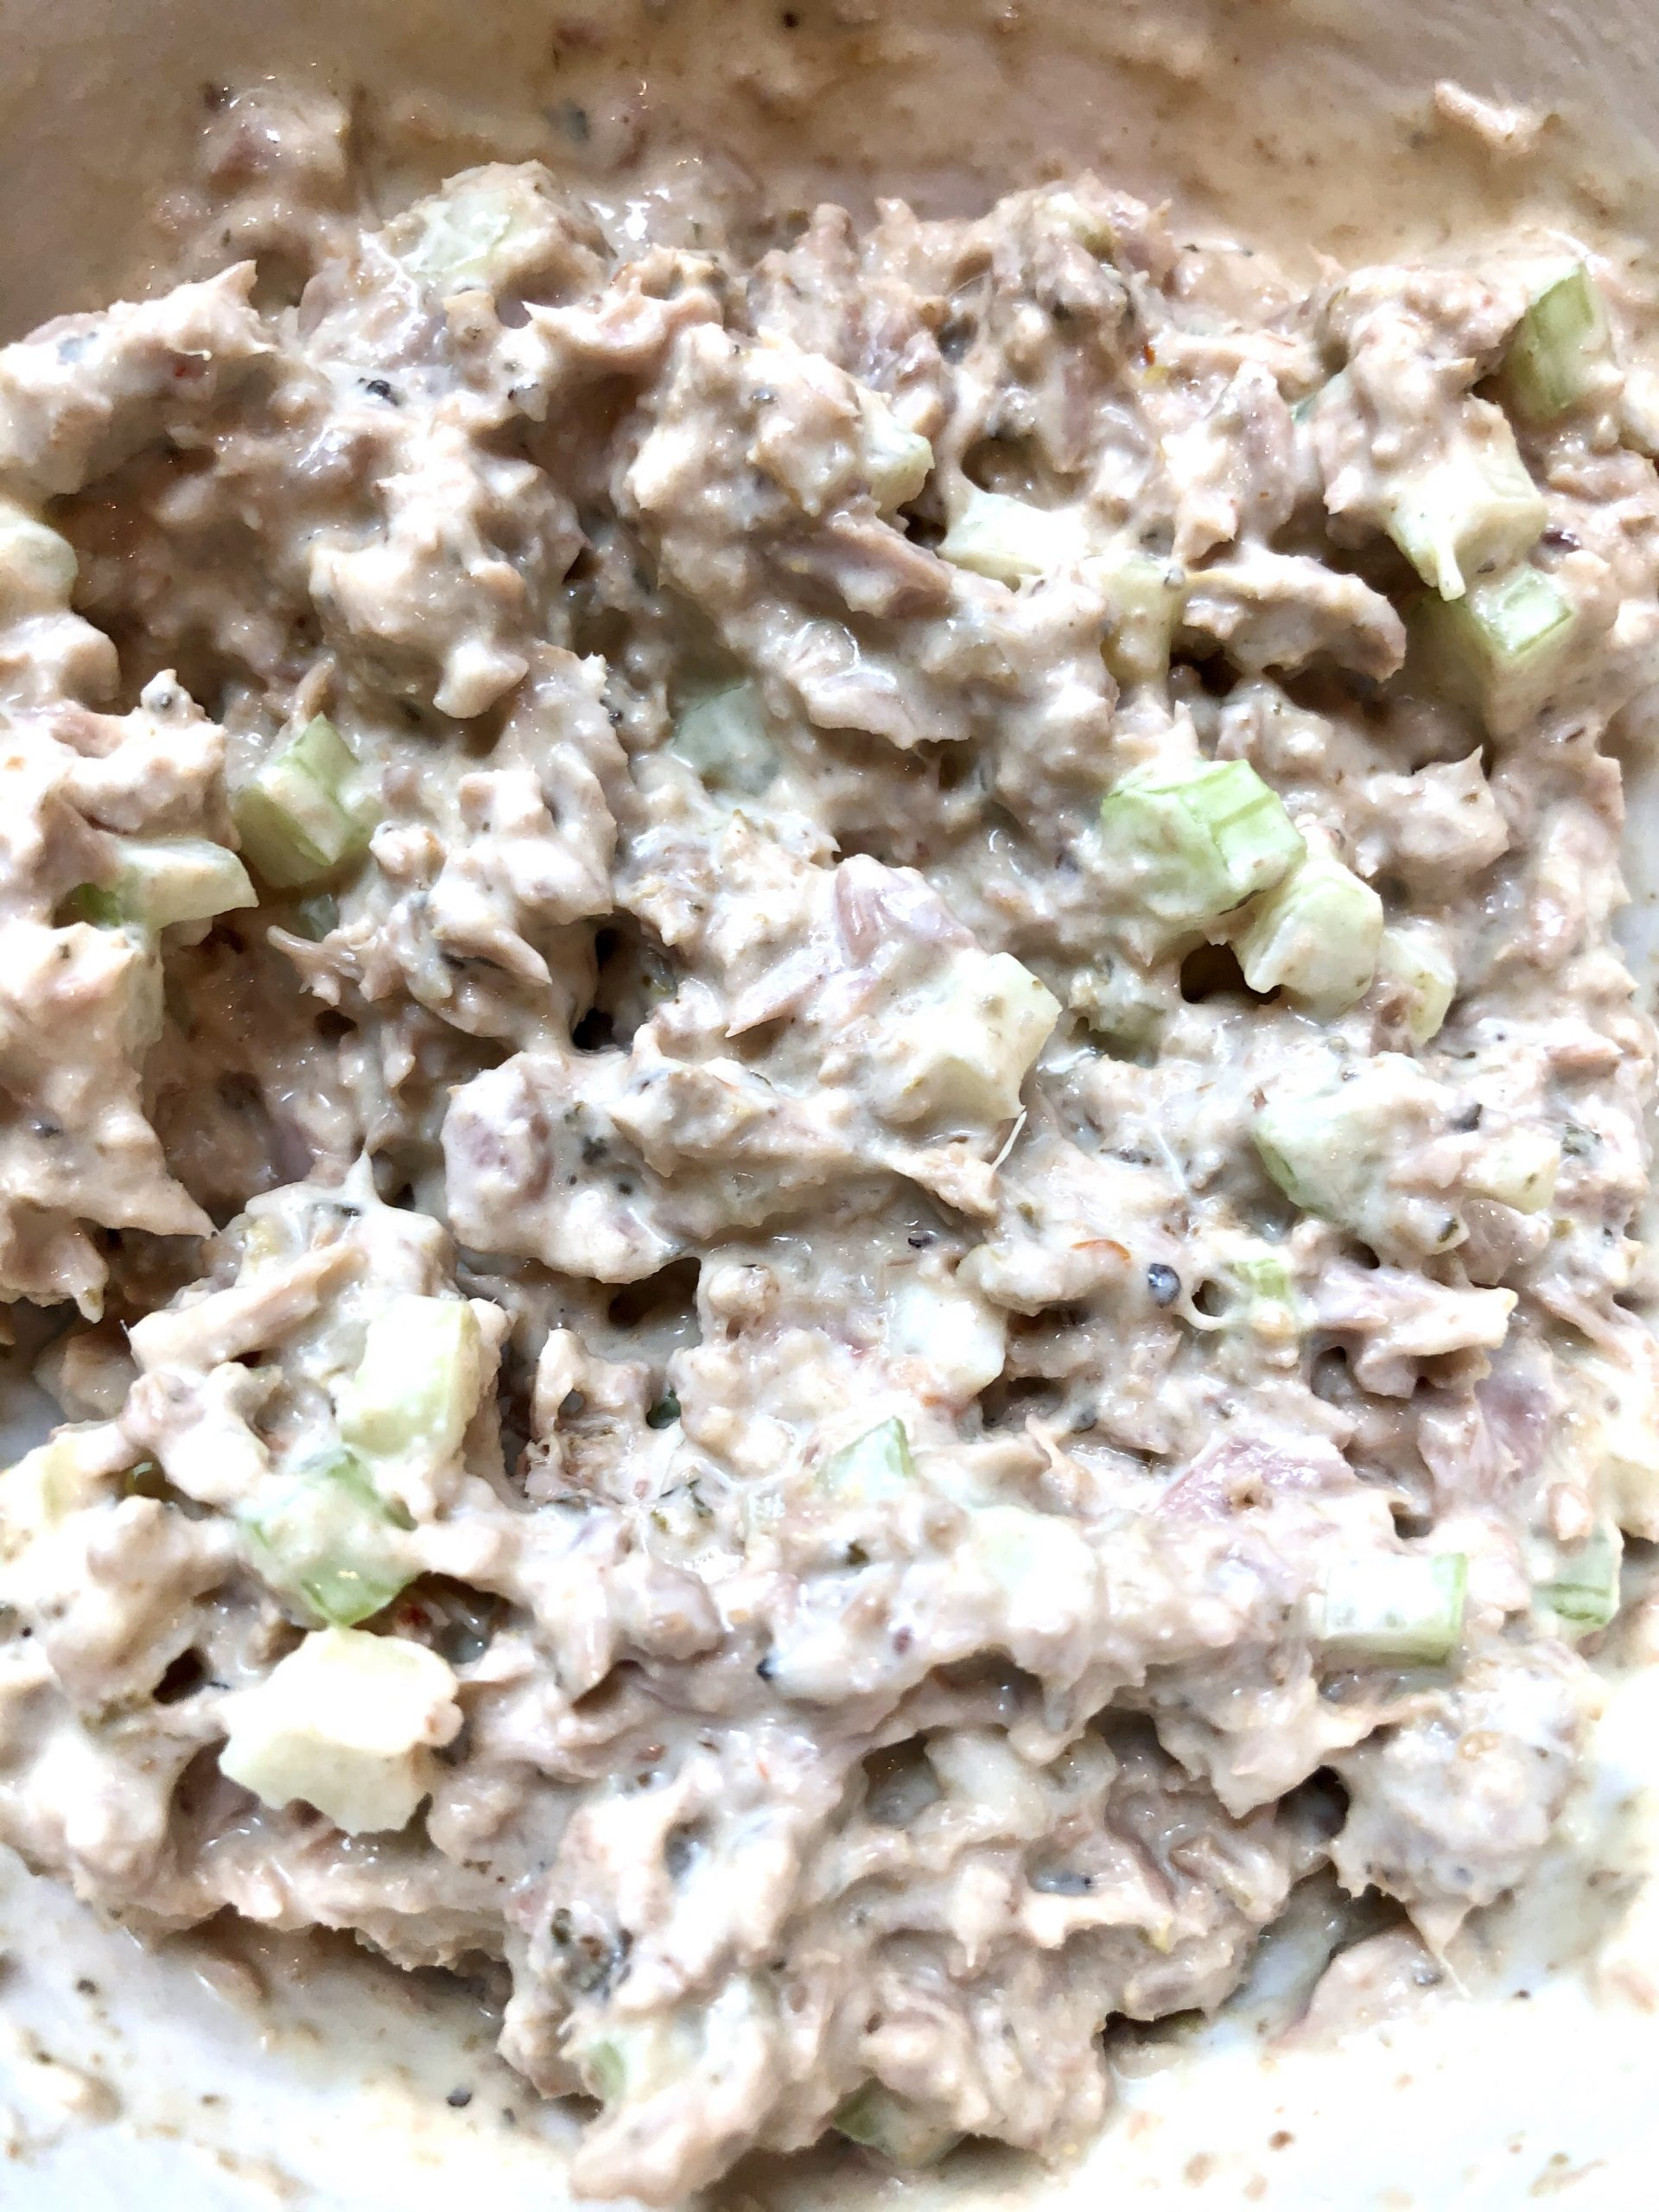 This Paleo Keto Tuna Salad Slider Appetizer is perfect for entertaining or just a quick snack. So easy to make & kids will love helping. It is AIP friendly, Whole 30, Lowcarb, & Keto. #paleo #keto #lowcarb #lowcarbsnack #ketosnack #appetizer #paleosnack #paleoappetizer #ketoappetizer #snack #whole30 #bubbiespickles #probiotic #tunasalad #sliders #thehealthnutmama